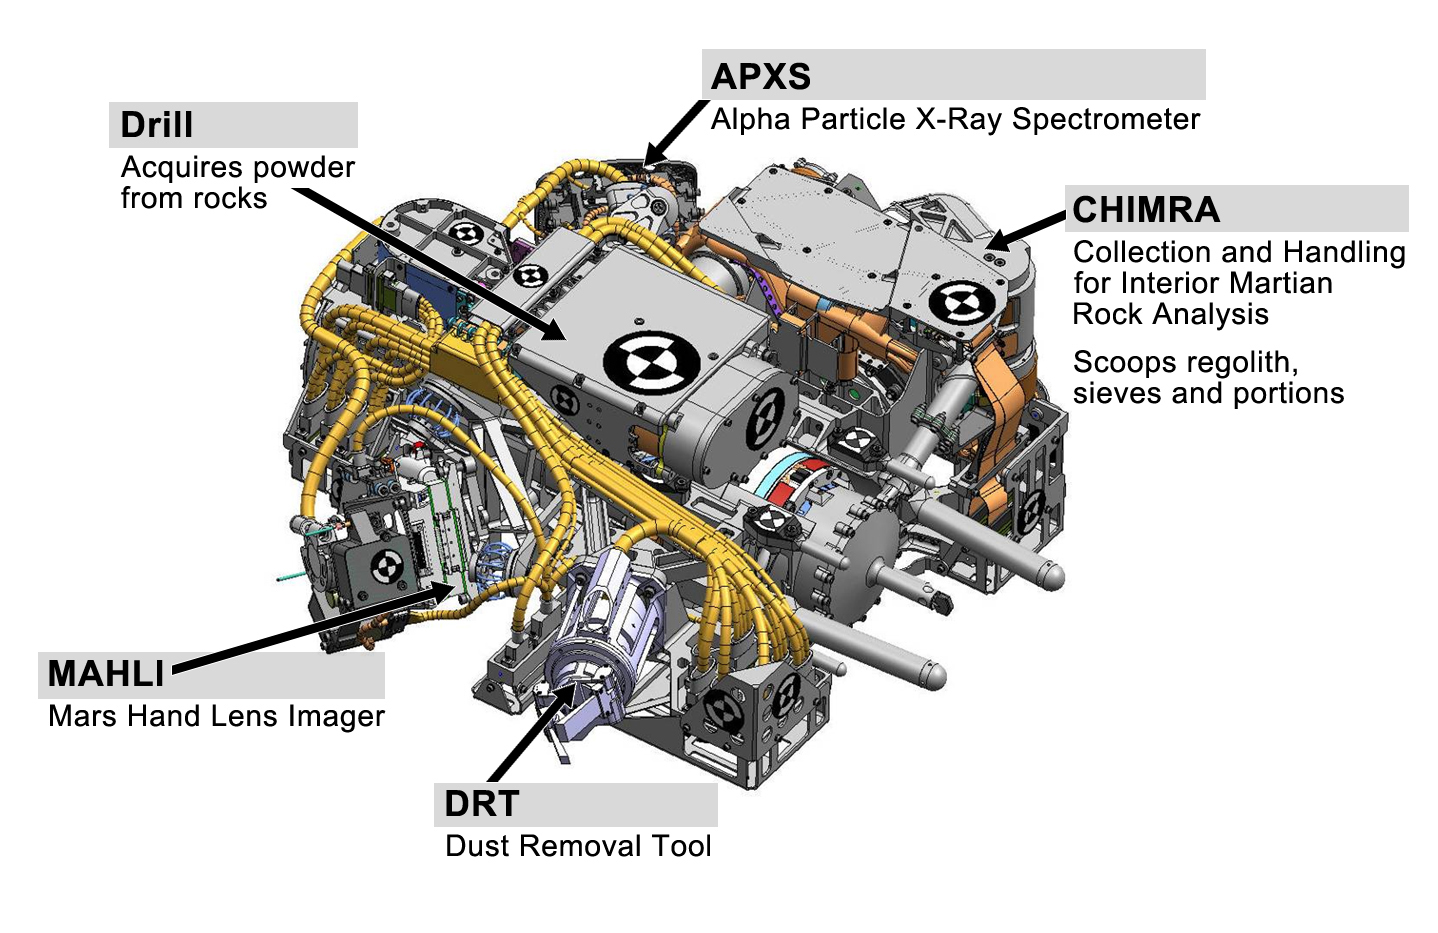 curiosity rover diagram 1995 4l80e wiring sets personal speed record begins flexing its